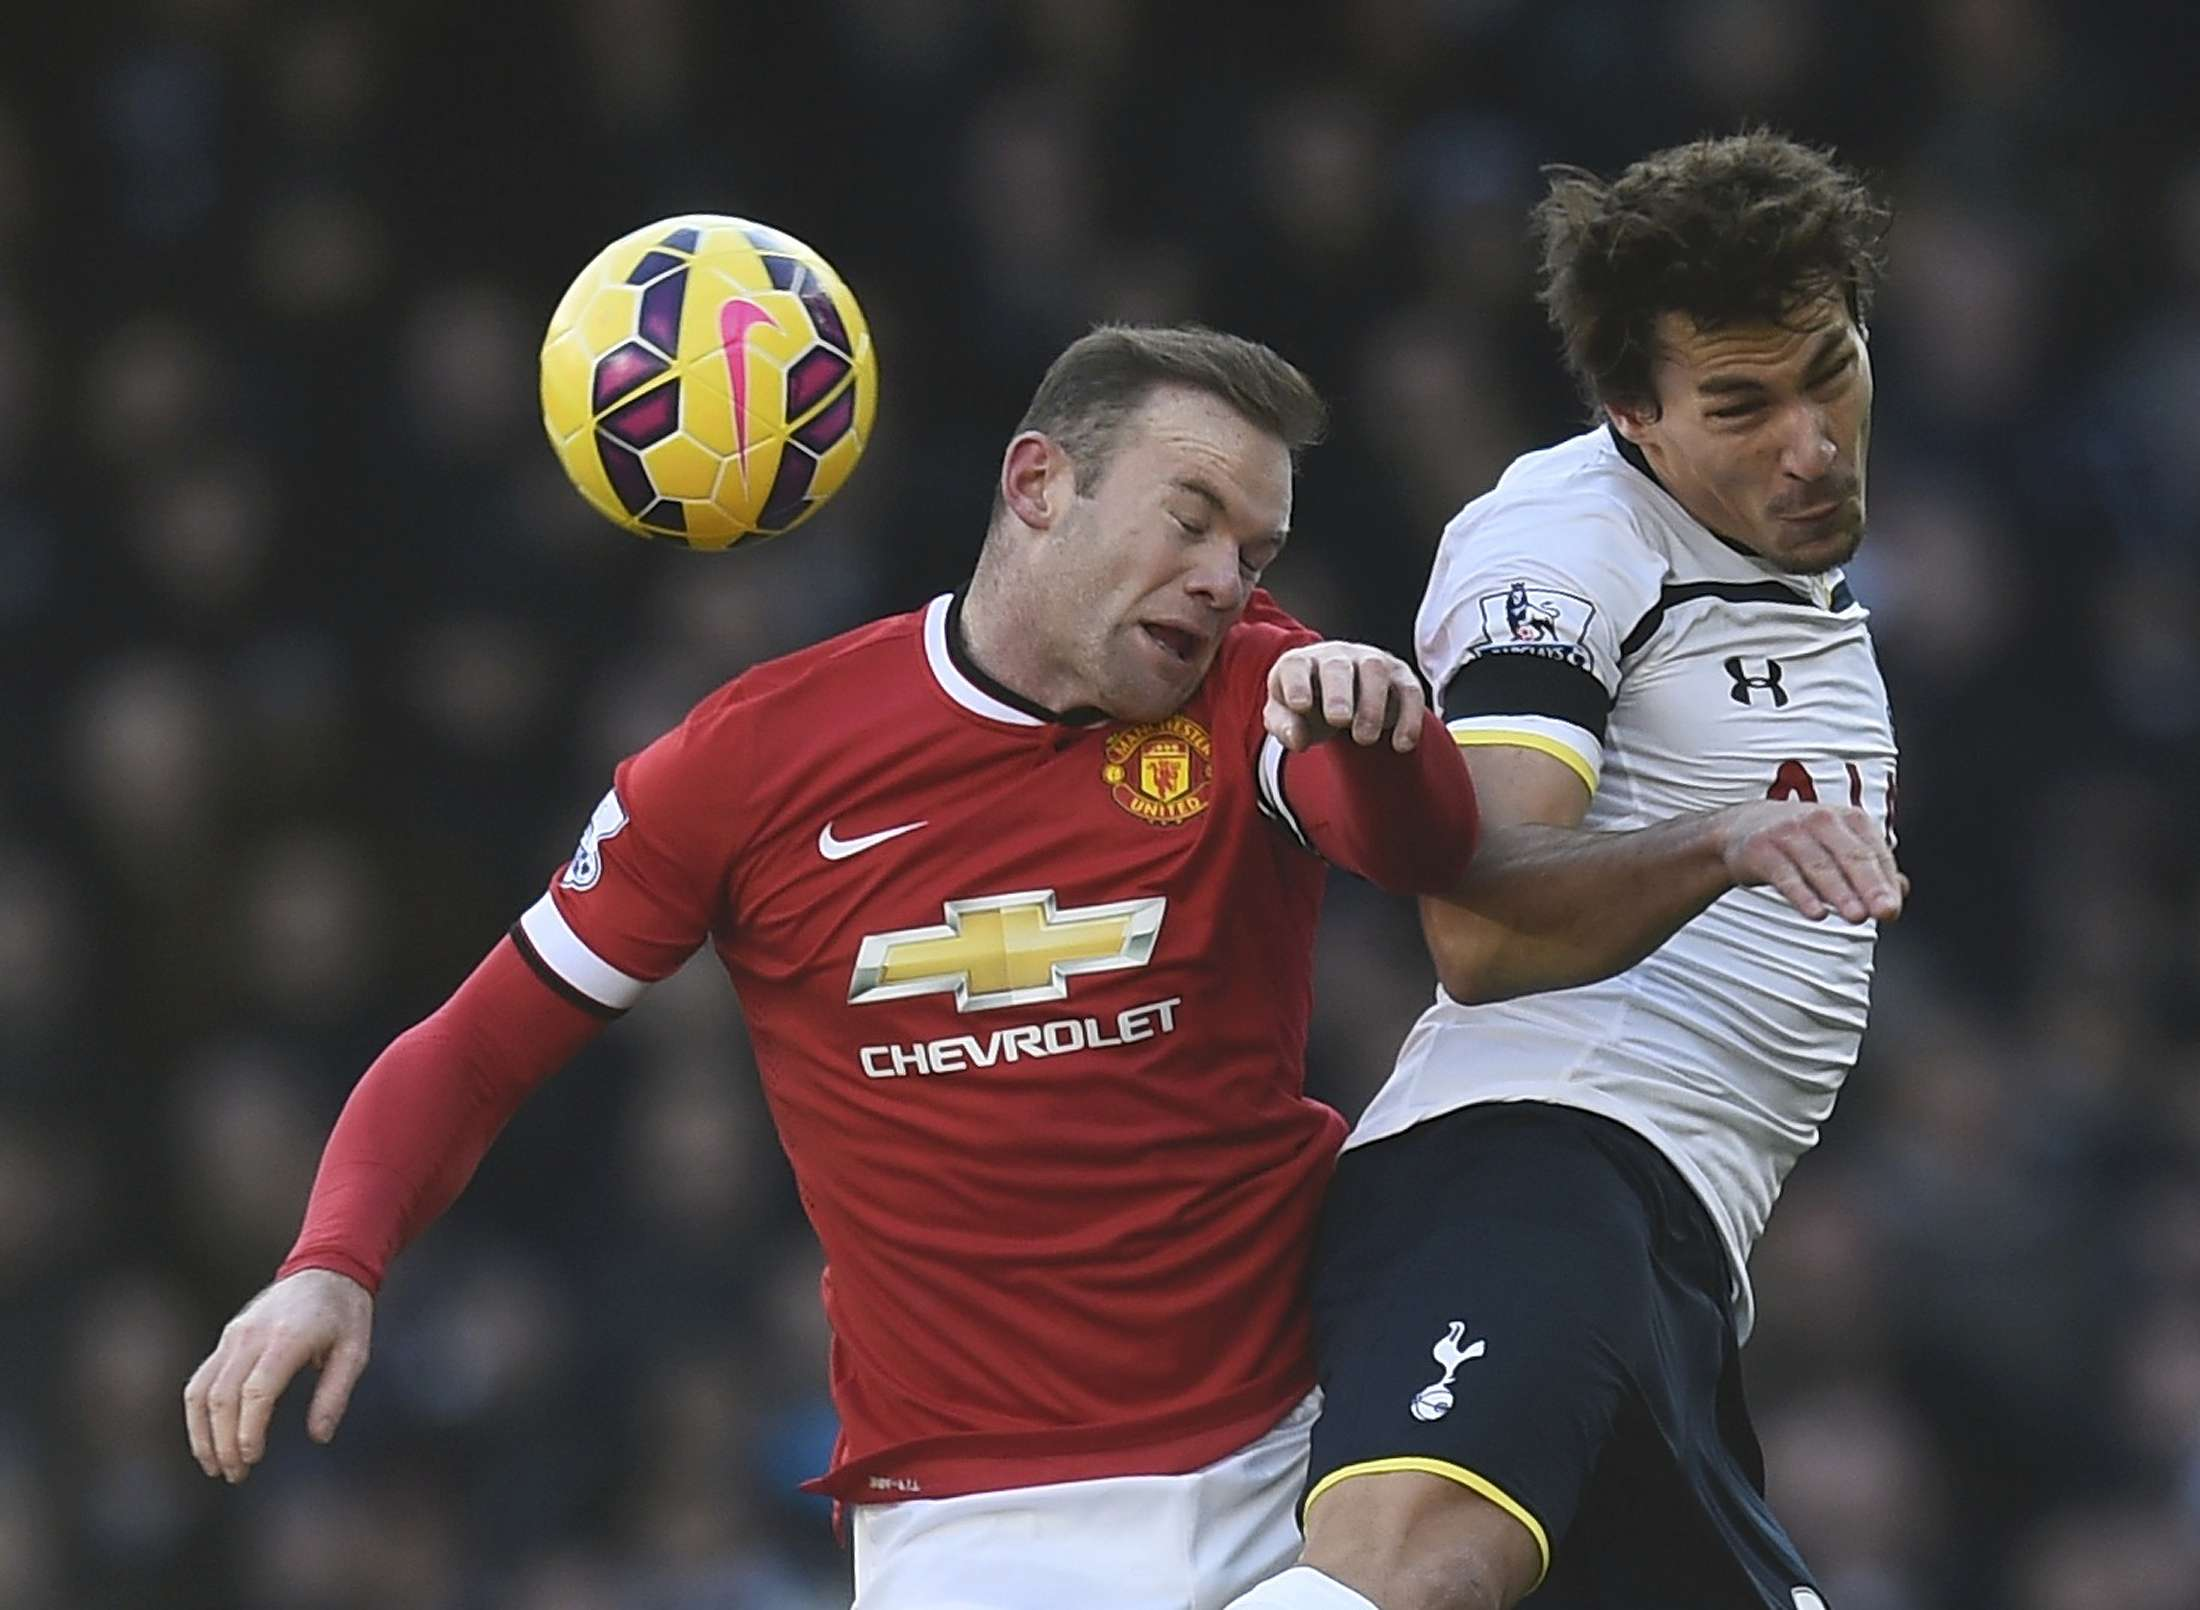 Tottenham Hotspur's Benjamin Stambouli (R) challenges Manchester United's Wayne Rooney during their English Premier League soccer match at White Hart Lane in London December 28, 2014. REUTERS/Dylan Martinez (BRITAIN - Tags: SOCCER SPORT) FOR EDITORIAL USE ONLY. NOT FOR SALE FOR MARKETING OR ADVERTISING CAMPAIGNS. EDITORIAL USE ONLY. NO USE WITH UNAUTHORIZED AUDIO, VIDEO, DATA, FIXTURE LISTS, CLUB/LEAGUE LOGOS OR 'LIVE' SERVICES. ONLINE IN-MATCH USE LIMITED TO 45 IMAGES, NO VIDEO EMULATION. NO USE IN BETTING, GAMES OR SINGLE CLUB/LEAGUE/PLAYER PUBLICATIONS. Foto: DYLAN MARTINEZ/REUTERS